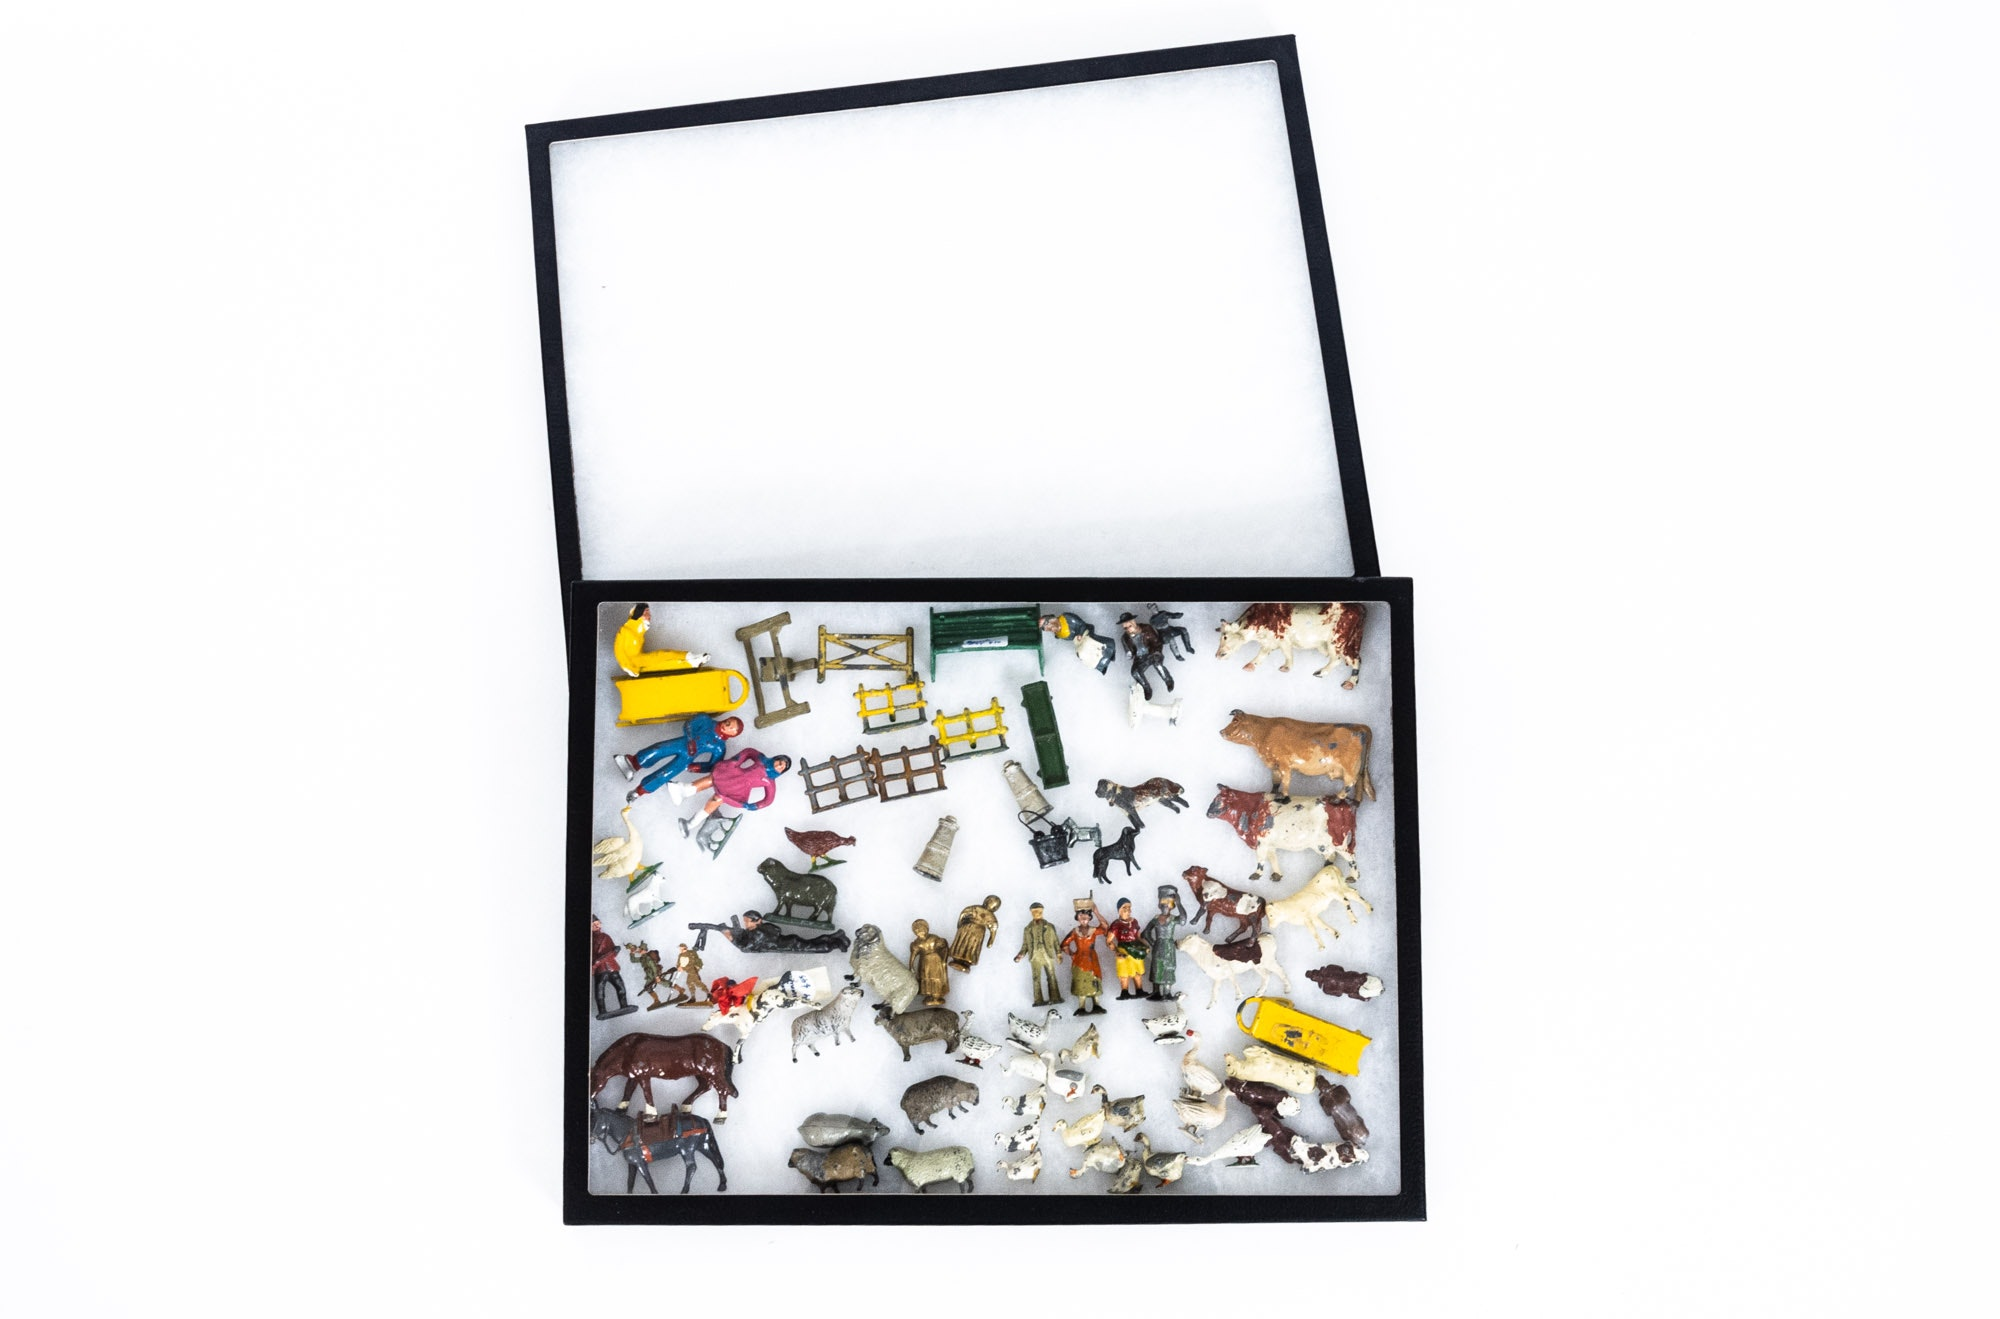 Vintage Die Cast and Metal Toy Figurines with Glass Display Cases